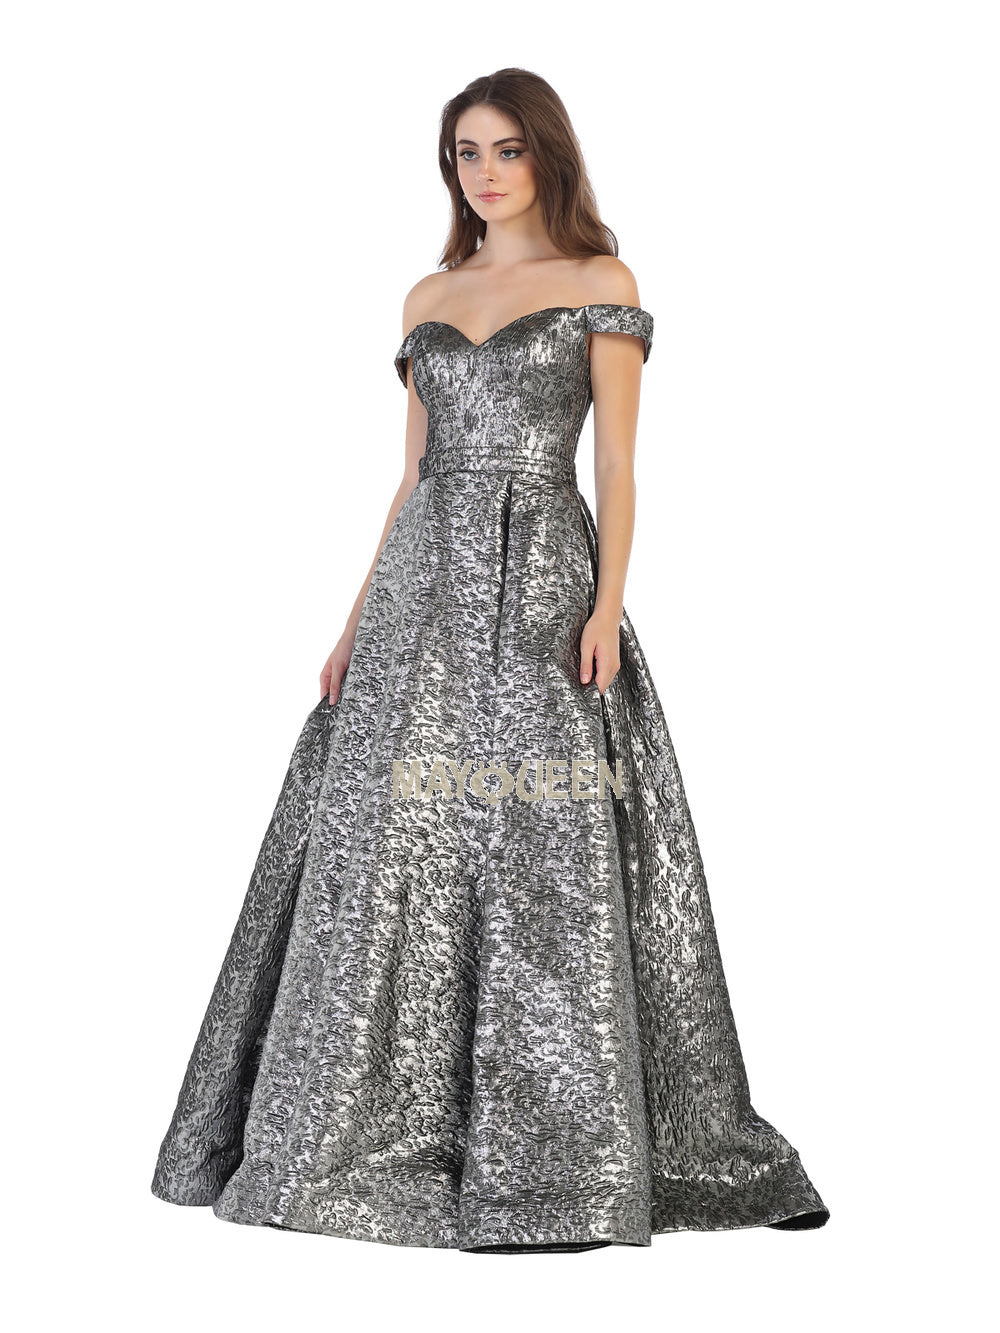 Mayqueen Size Chart E MQ 7704 - Off the Shoulder Ballgown with Metallic Embossed Material - Diggz Prom